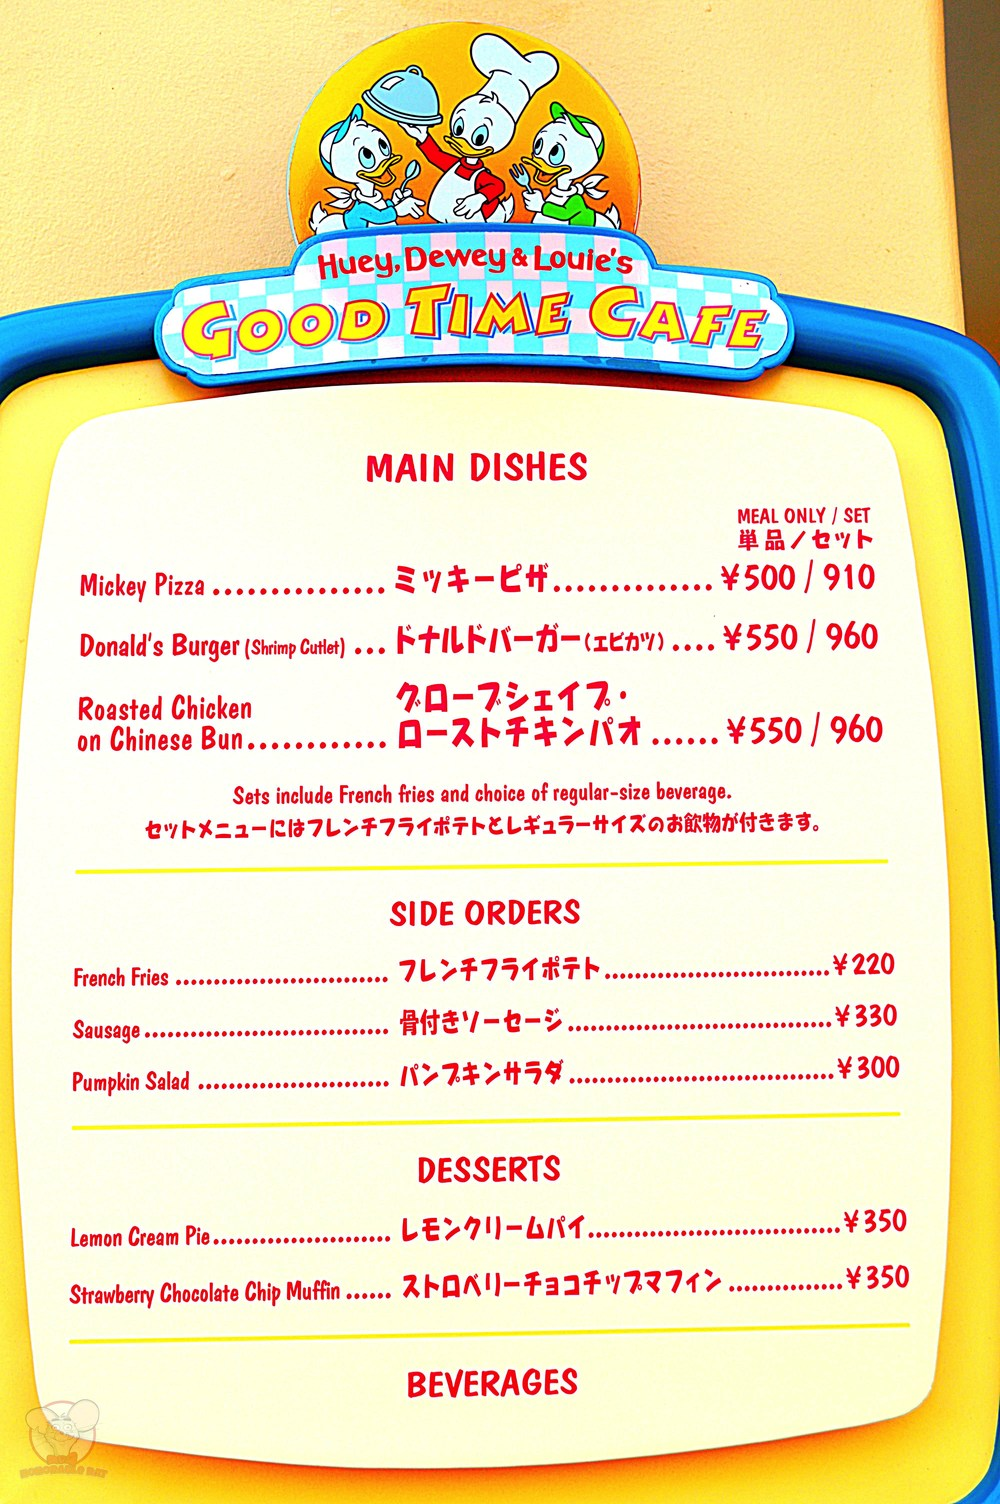 Good Time Cafe's menu